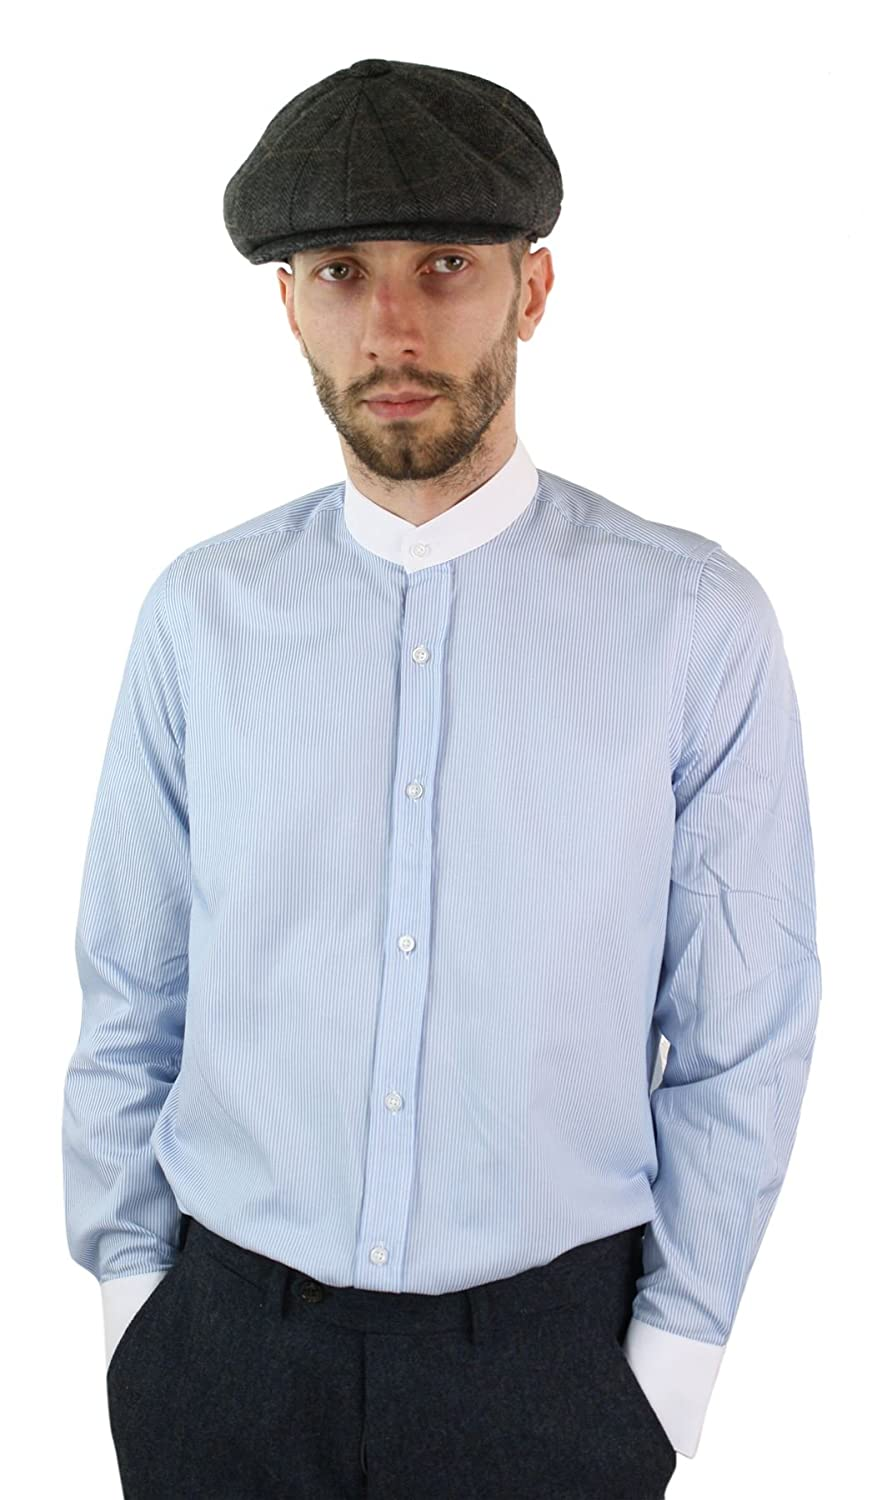 1920s Style Men's Shirts | Peaky Blinders Shirts and Collars Mens Retro Peaky Blinders Removable Collar Stripe Grandad Nehru Collarless Shirt - Light-Blue S(36-38